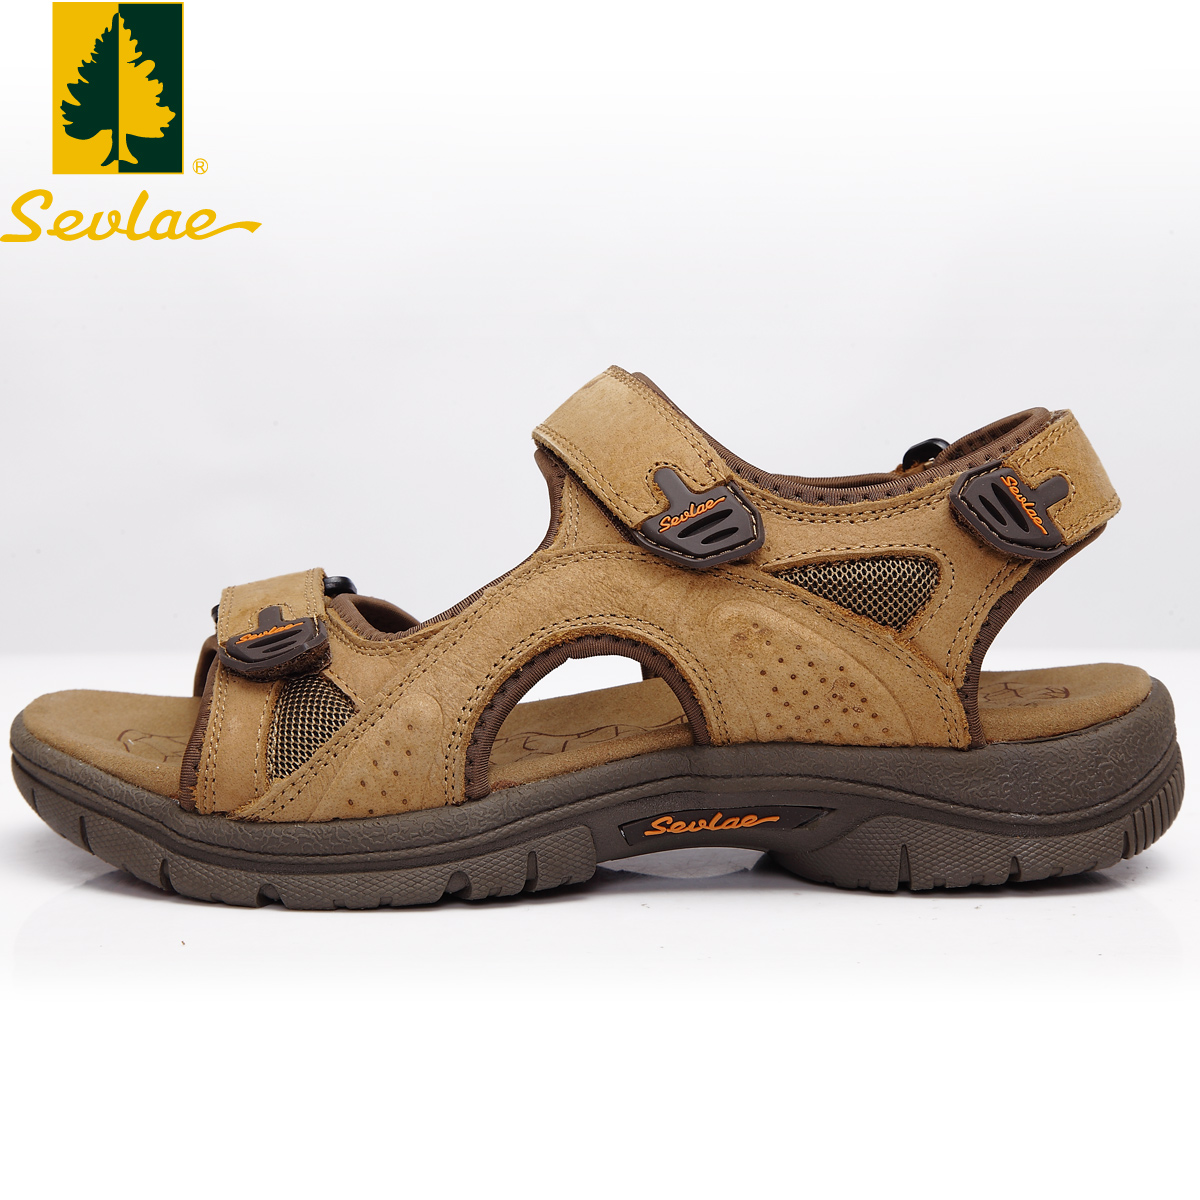 38606051f598 Get Quotations · Sevlae shengfu lai outdoor men s first layer of leather sandals  velcro sandals beach sandals 9321915009